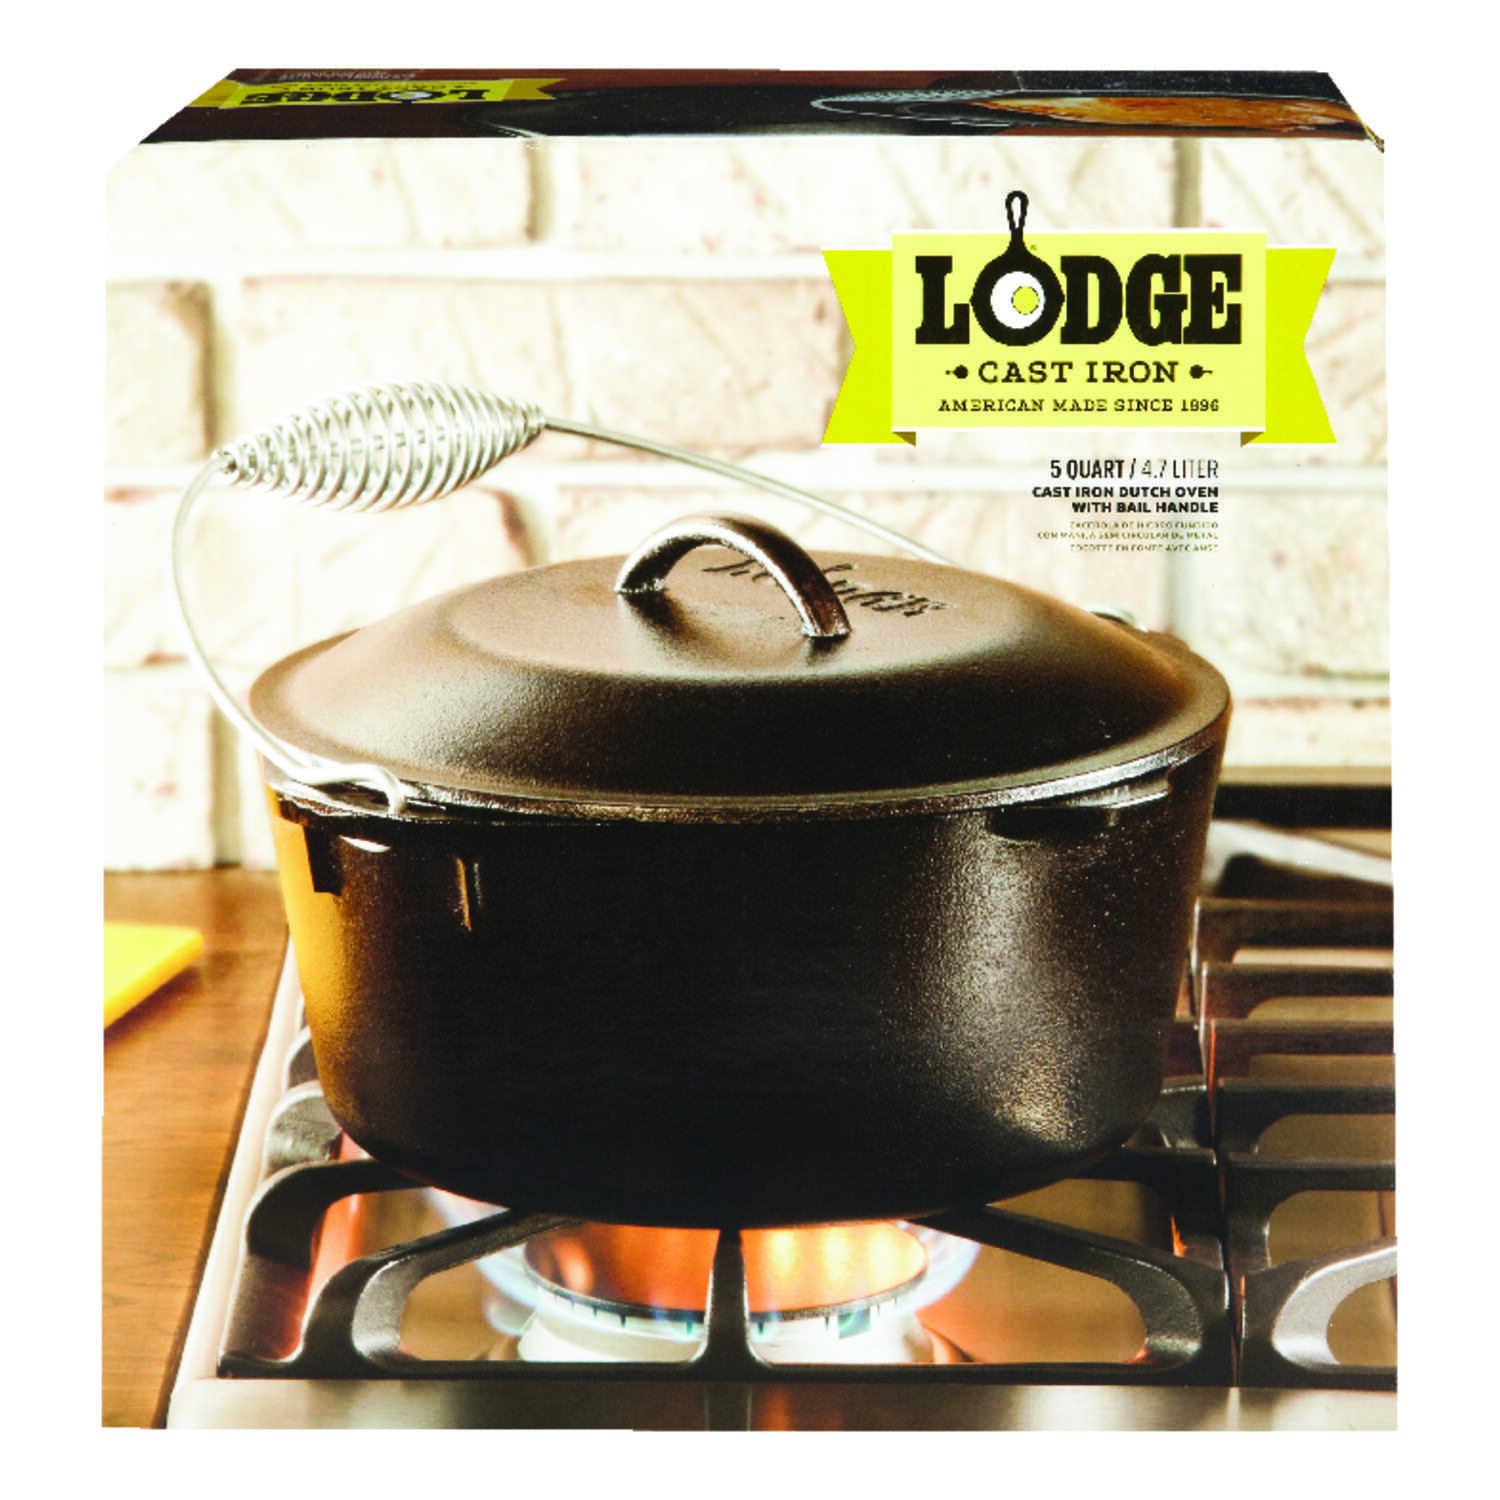 Lodge  Logic  Cast Iron  Dutch Oven  11 in. 5 Quarts  Black